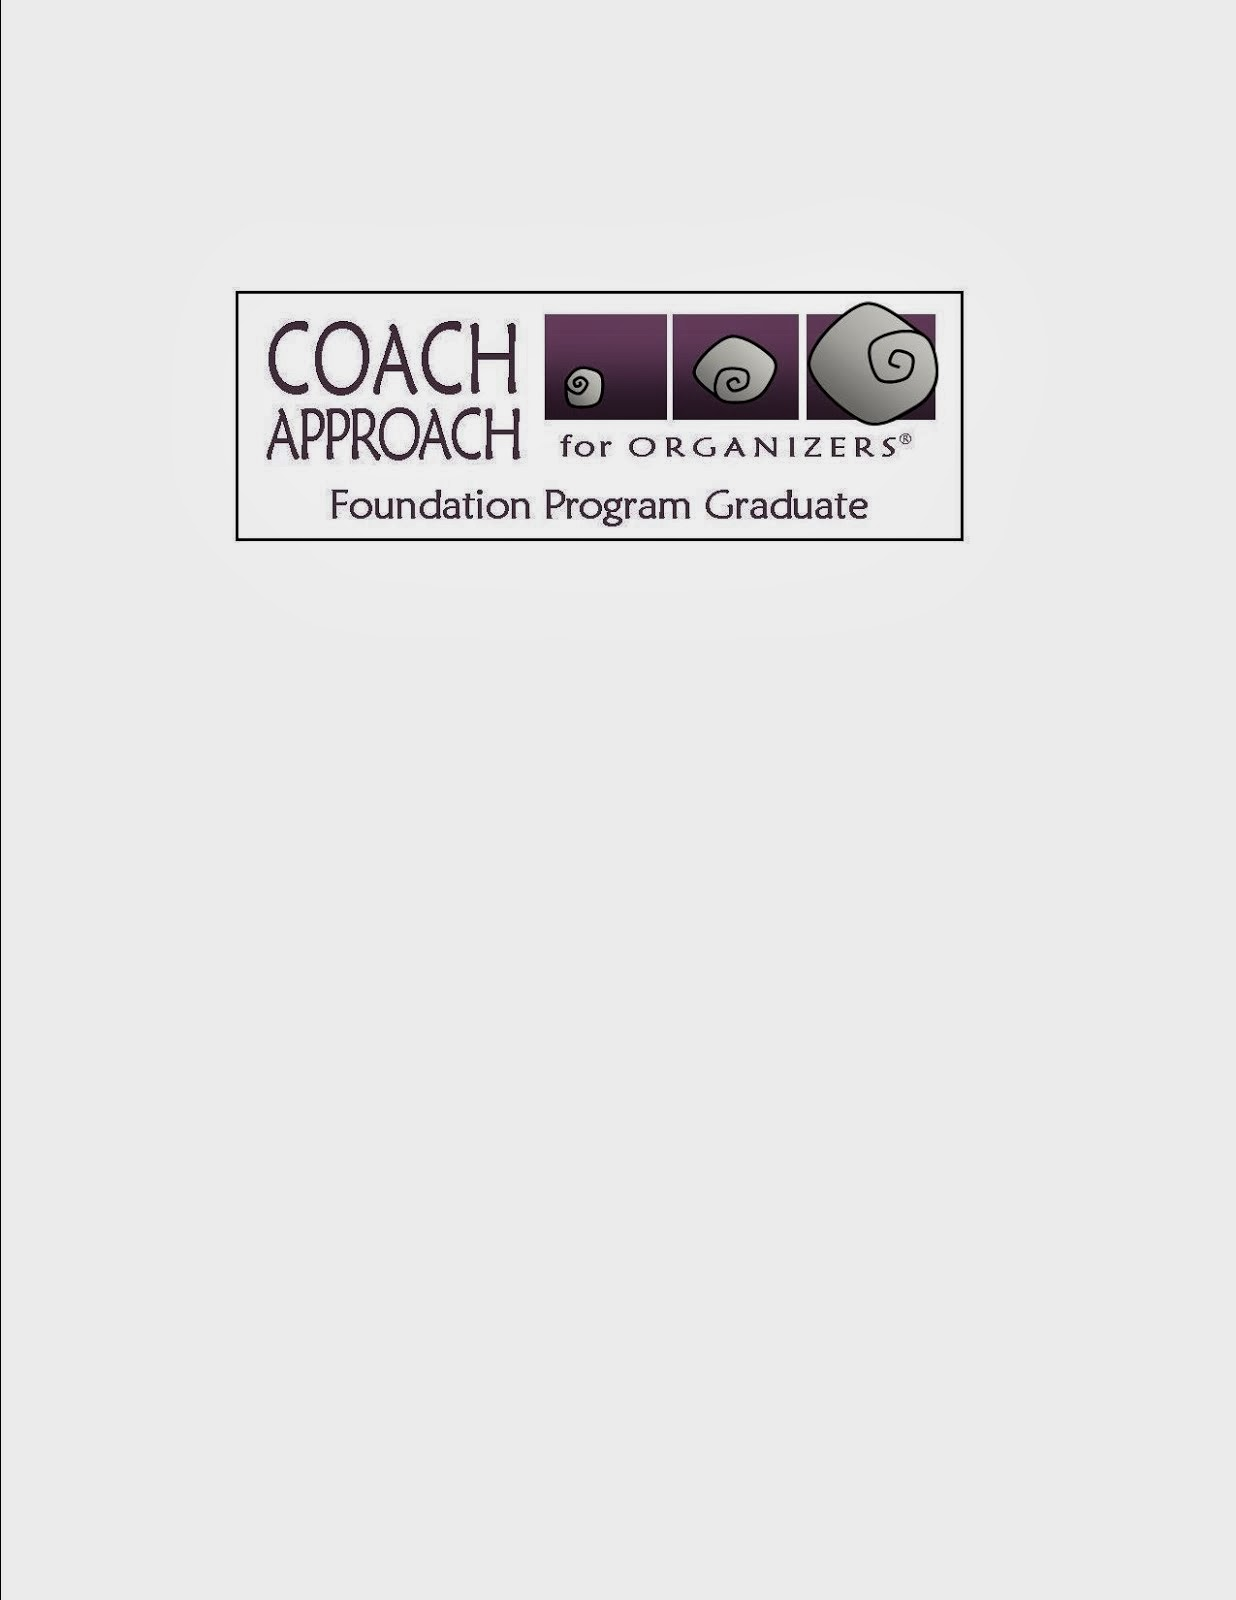 Coach Approach for Organizers